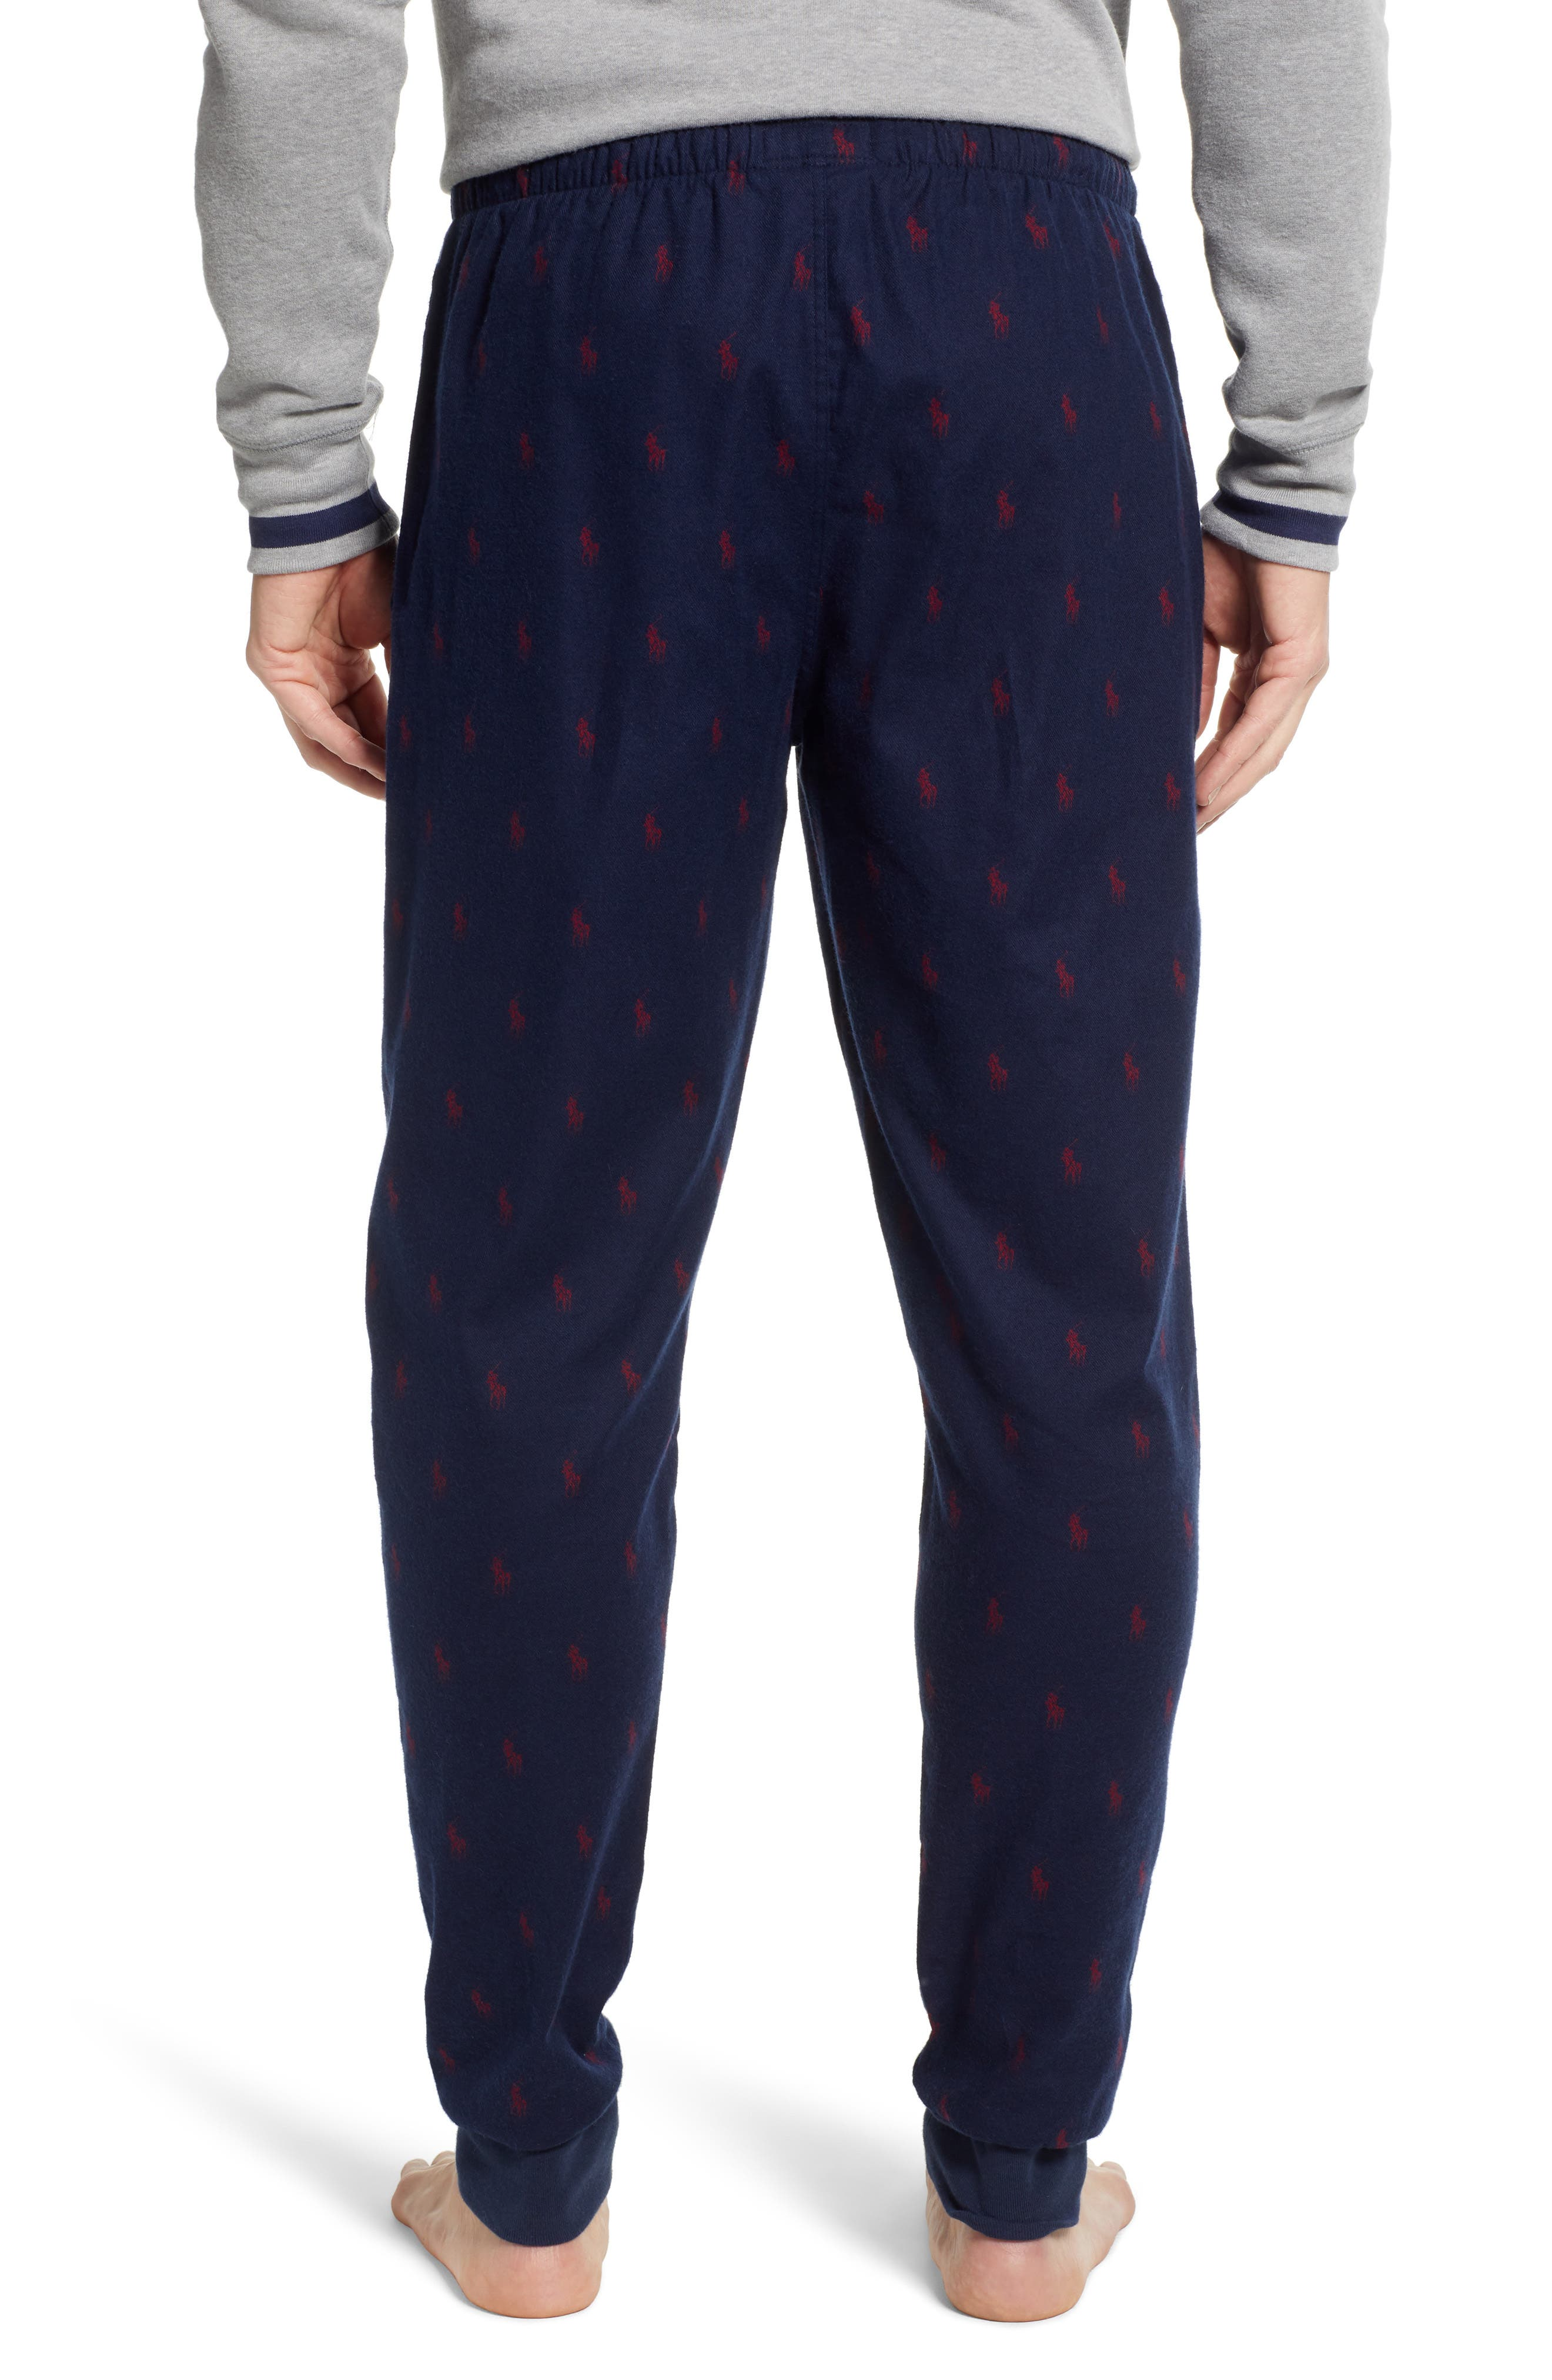 POLO RALPH LAUREN, Flannel Cotton Jogger Pants, Alternate thumbnail 2, color, CRUISE NAVY/ HOLIDAY RED